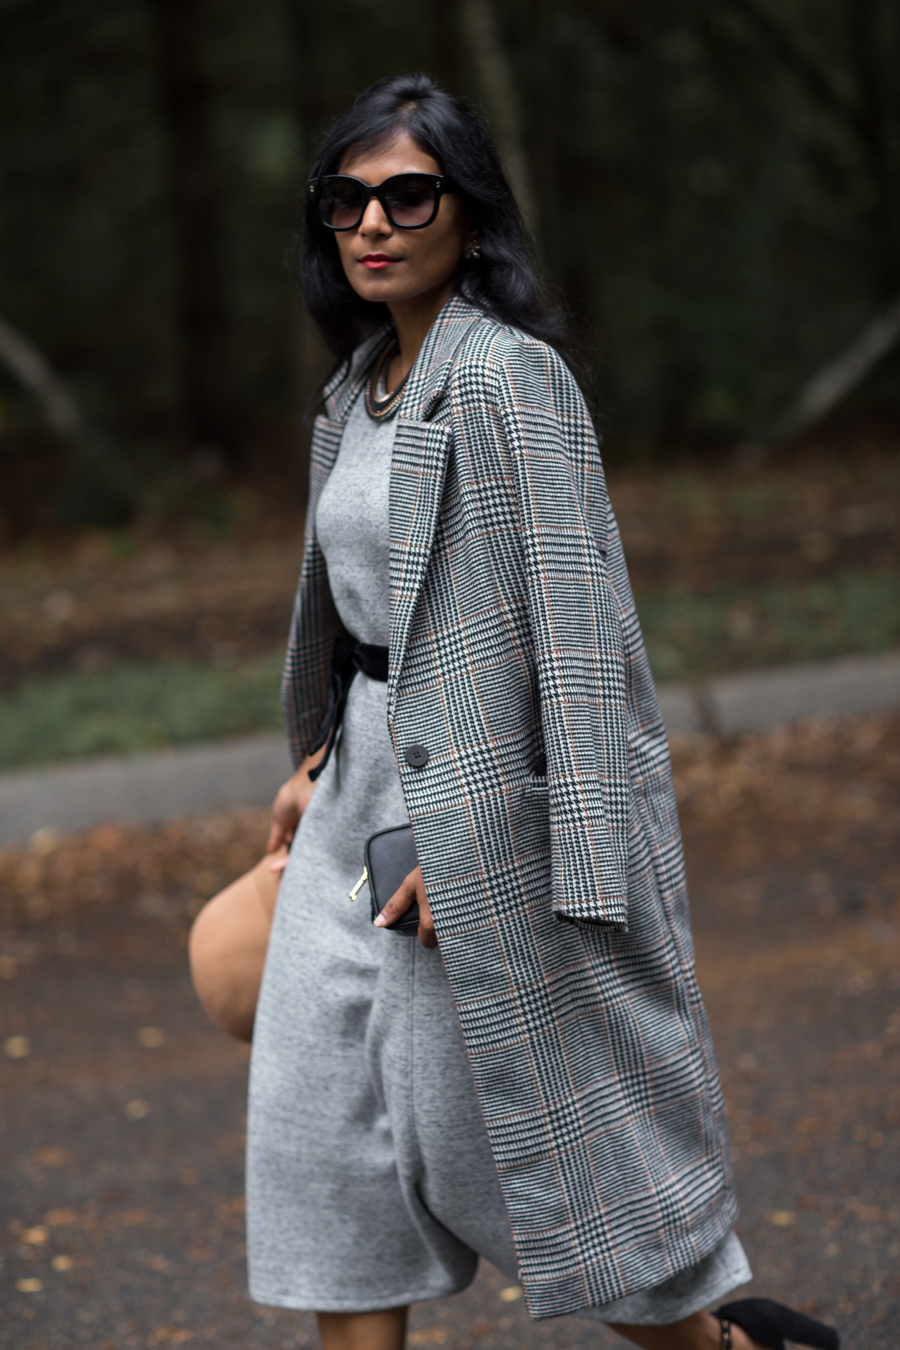 work style, work dress, j.crew, preppy, classic style, holiday style for work, petite fashion, petite blogger, new england, fall fashion, neutrals, checked coat, menswear trend